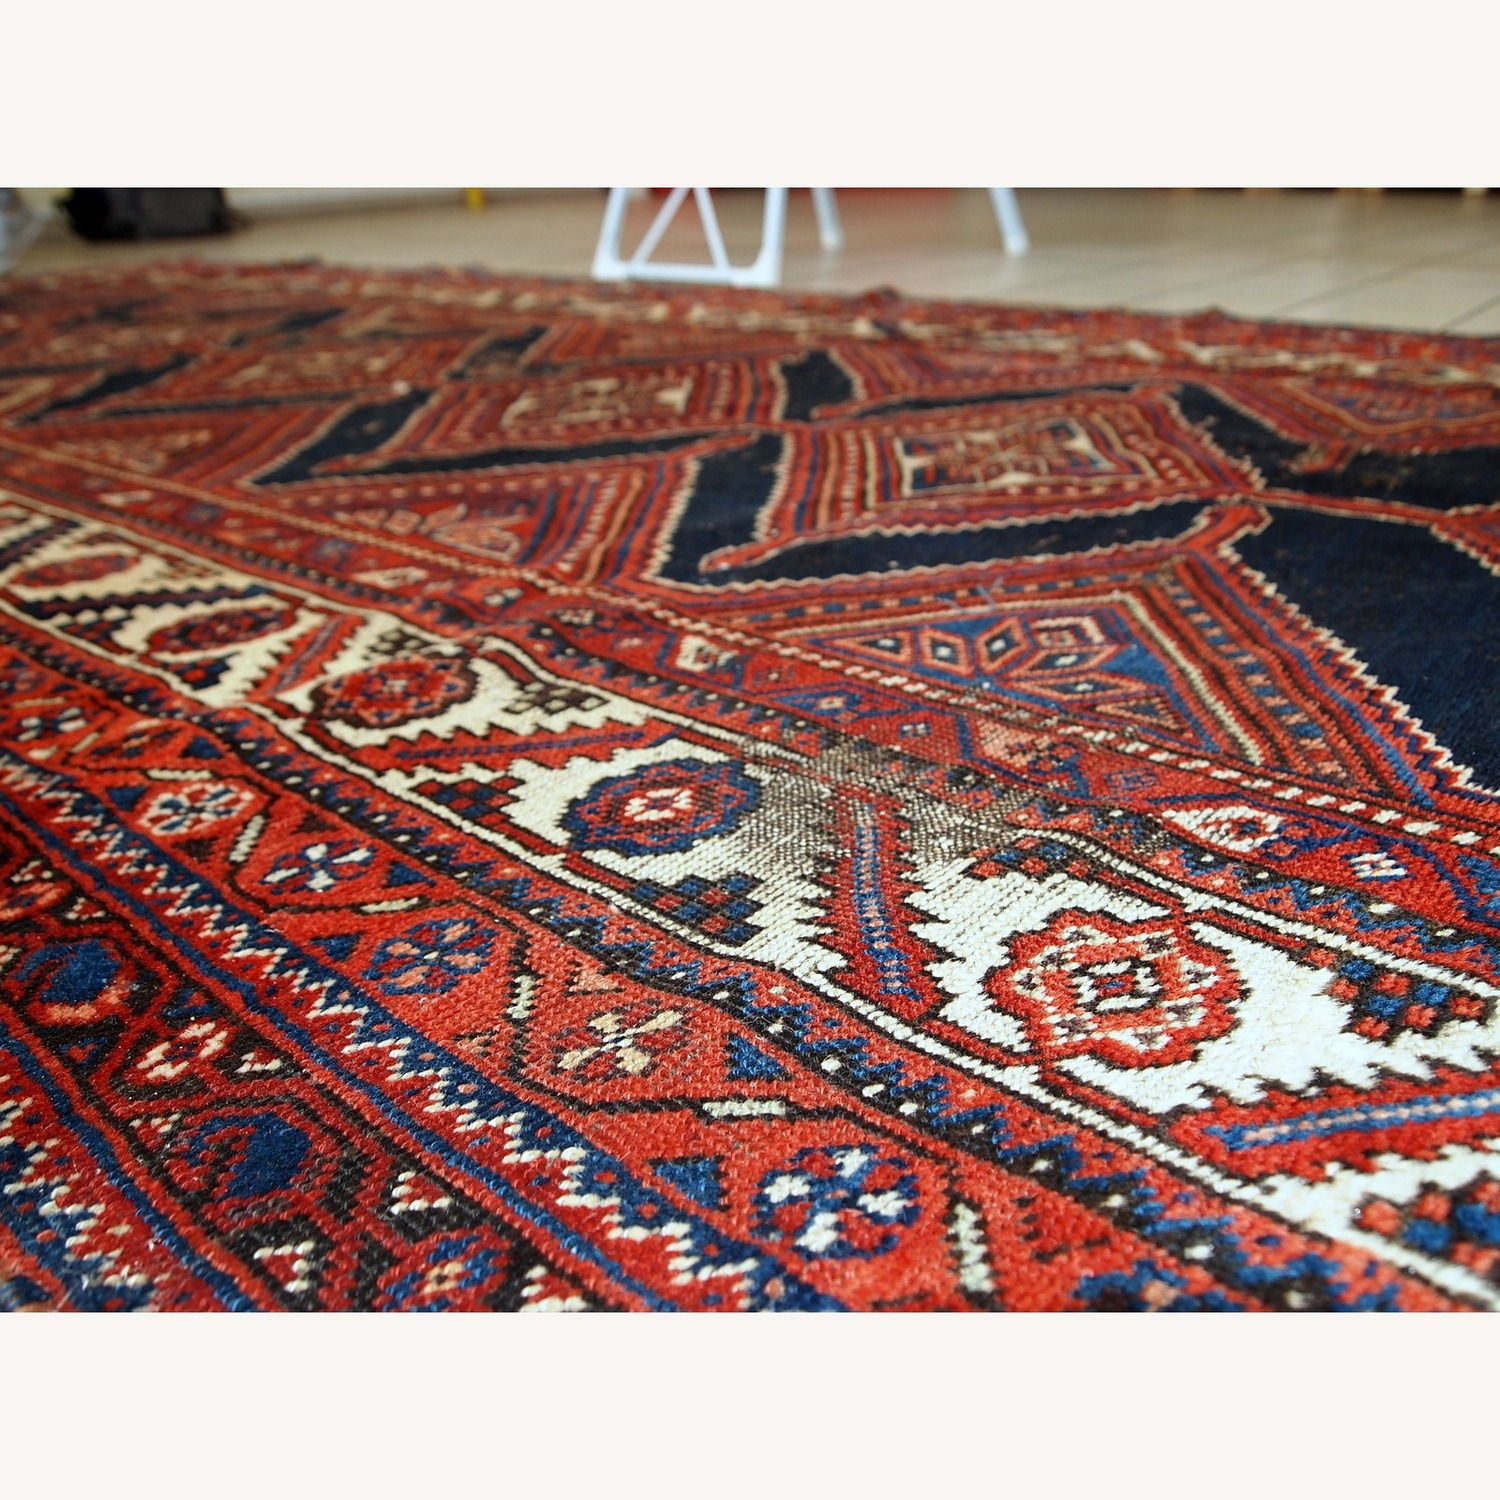 Handmade Antique Distressed Persian Shiraz Rug - image-4